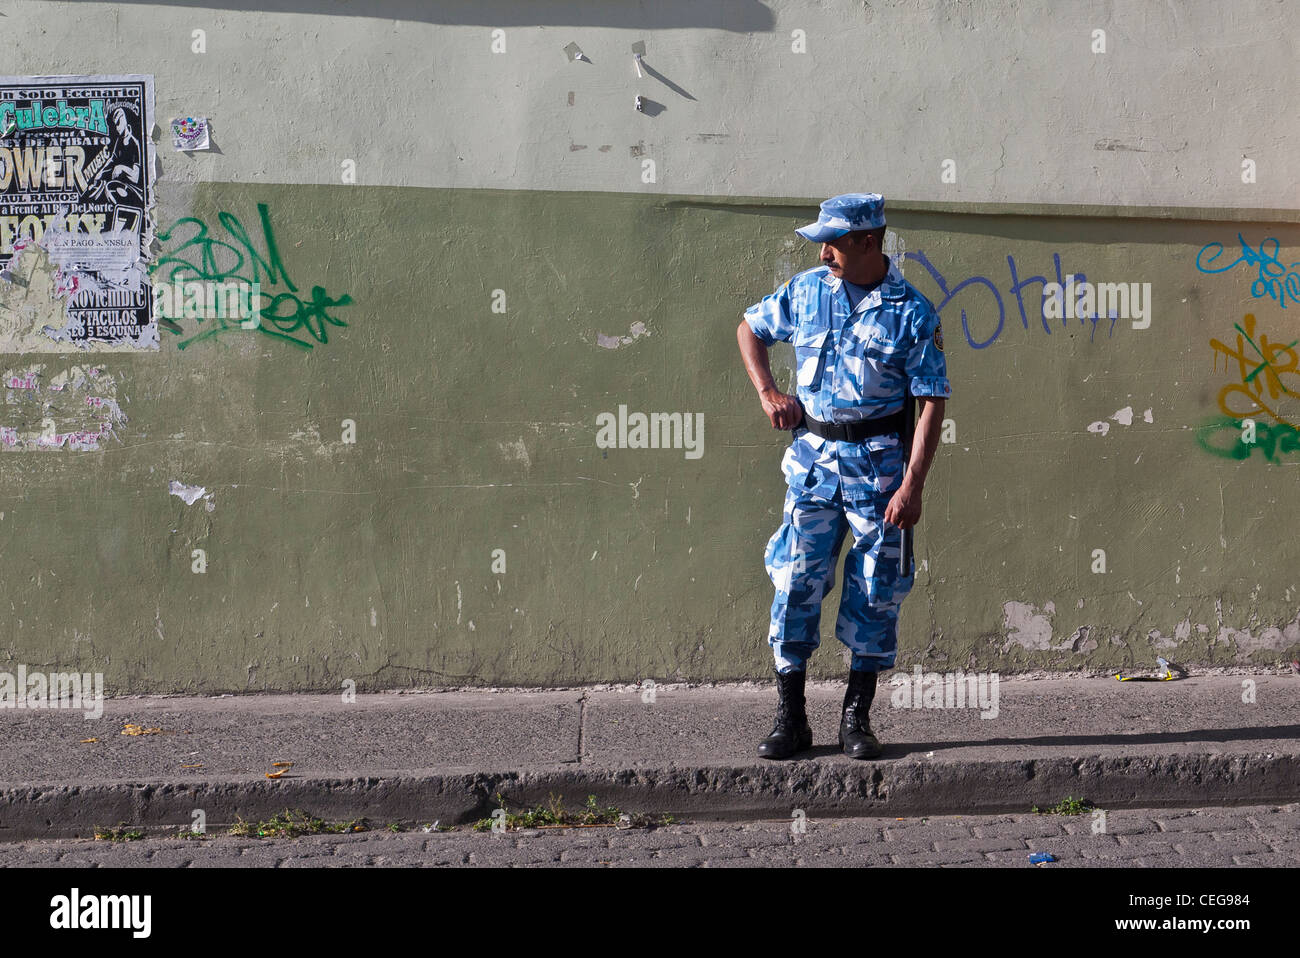 A Guatemalan military man in blue and white uniform stands on the sidewalk in Latacunga, Ecuador. Stock Photo